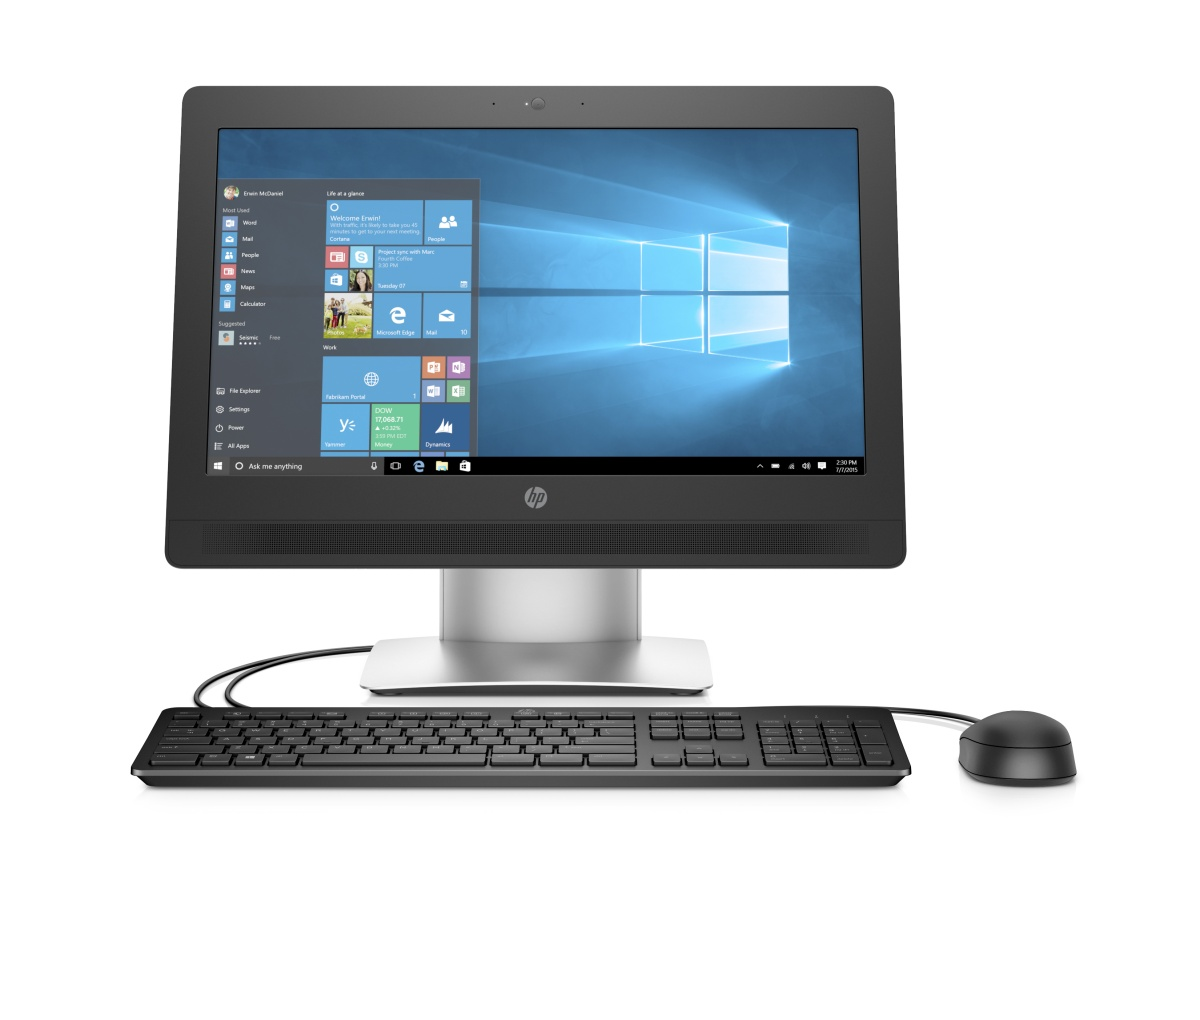 HP ProOne 400G2 AiO 20NT i3-6100T,1x4GB,128GB SSD,Intel HD,WiFi ac,BT, usb slim kl. a myš, SD MCR,DVDRW,Win10Pro64